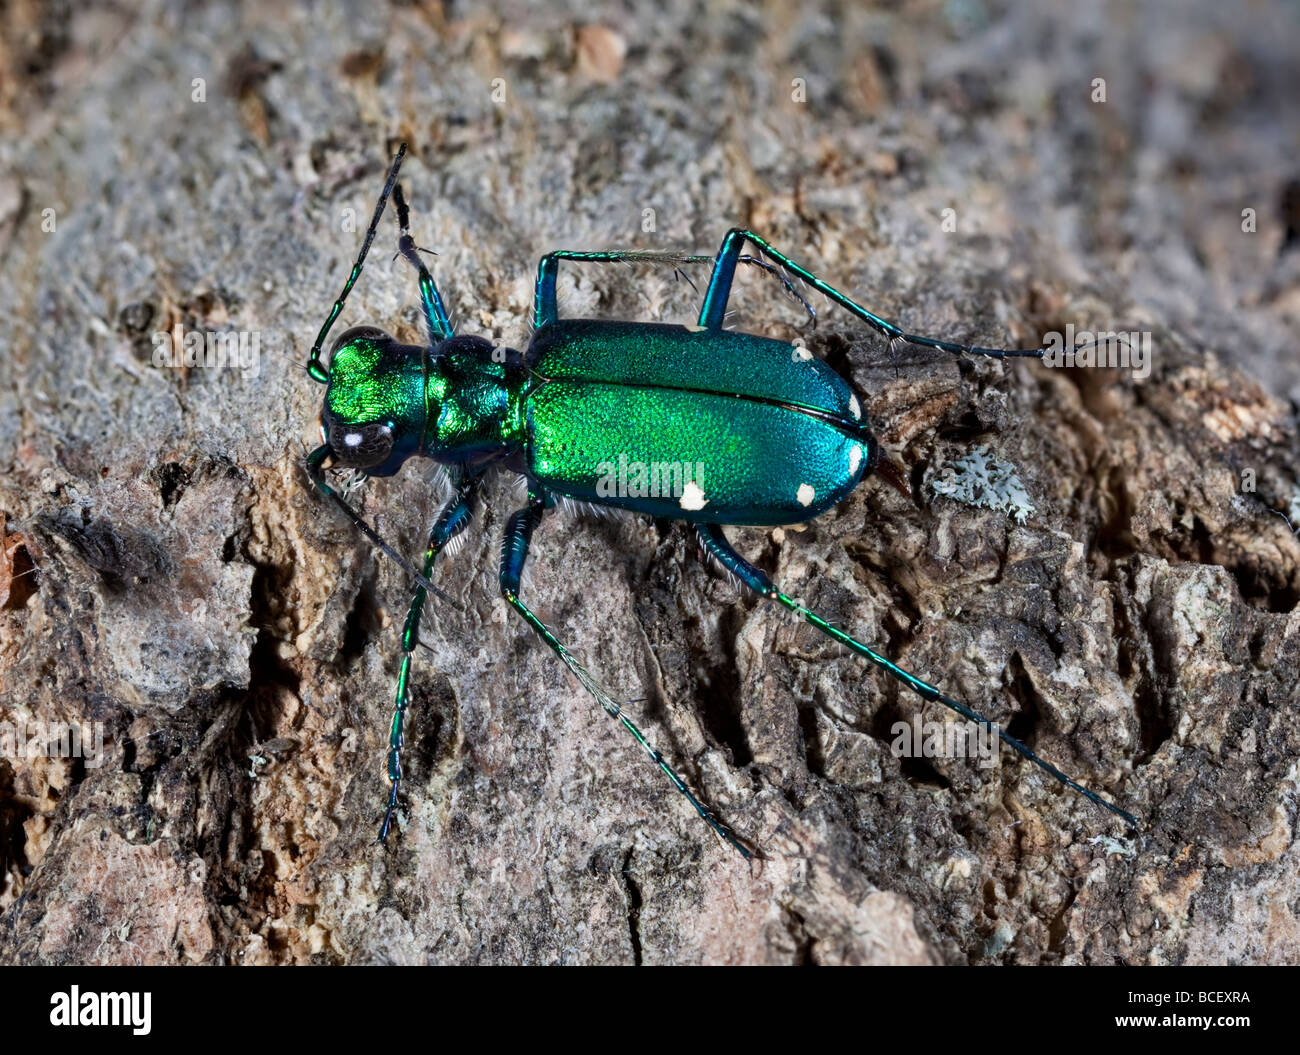 Six Spotted Green Tiger Beetle Cicindela sexguttata - Stock Image